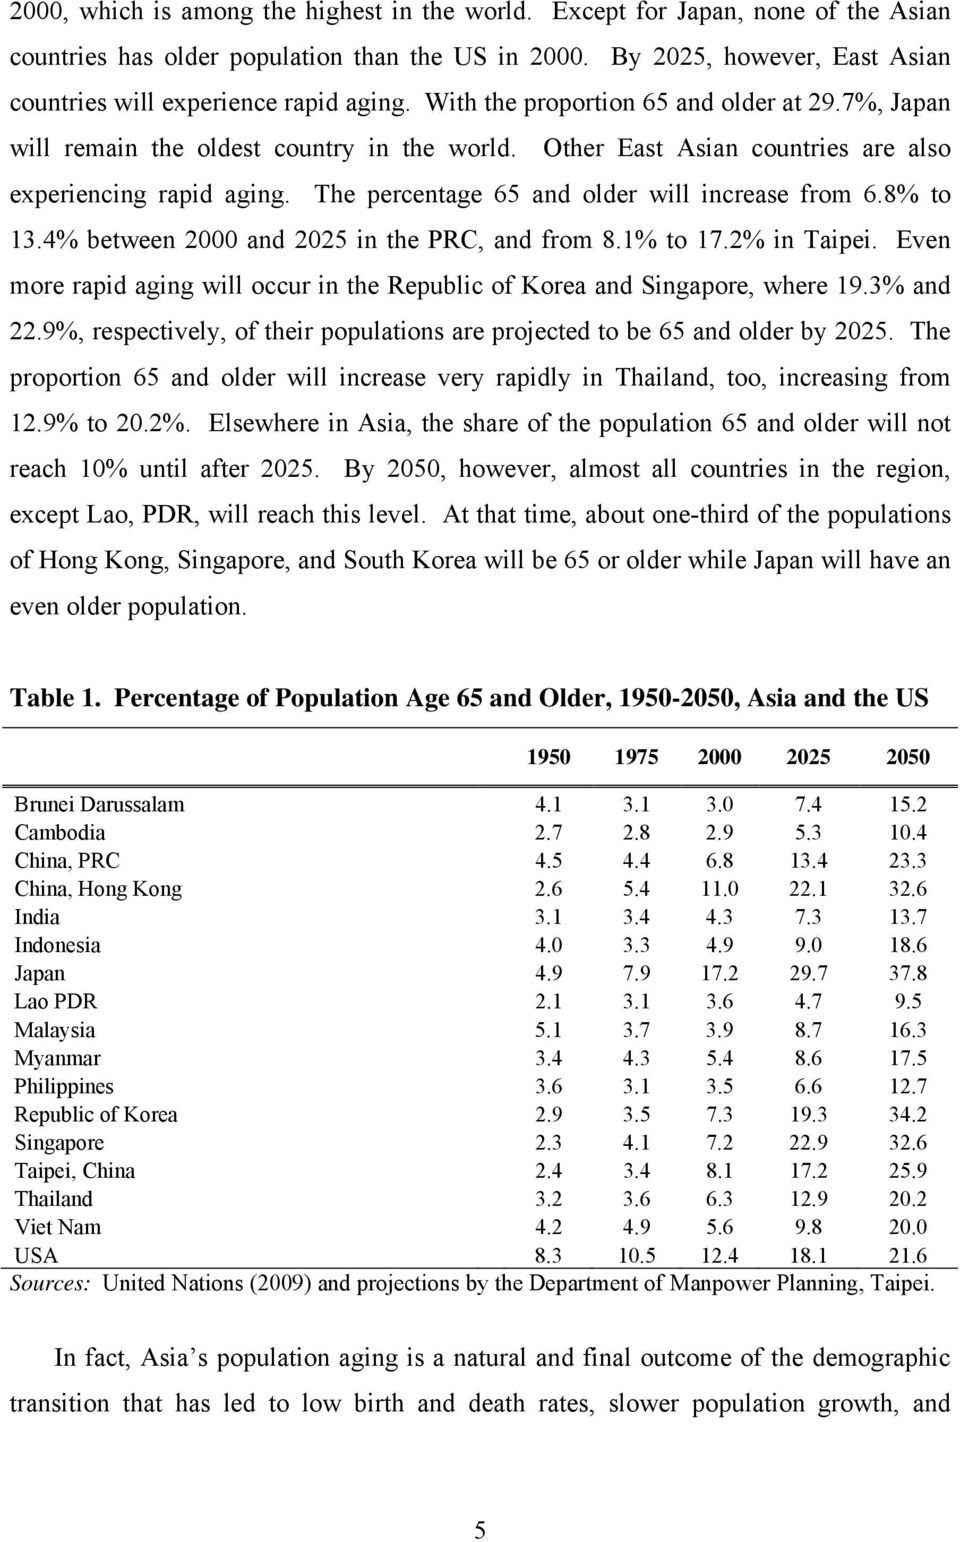 Other East Asian countries are also experiencing rapid aging. The percentage 65 and older will increase from 6.8% to 13.4% between 2000 and 2025 in the PRC, and from 8.1% to 17.2% in Taipei.